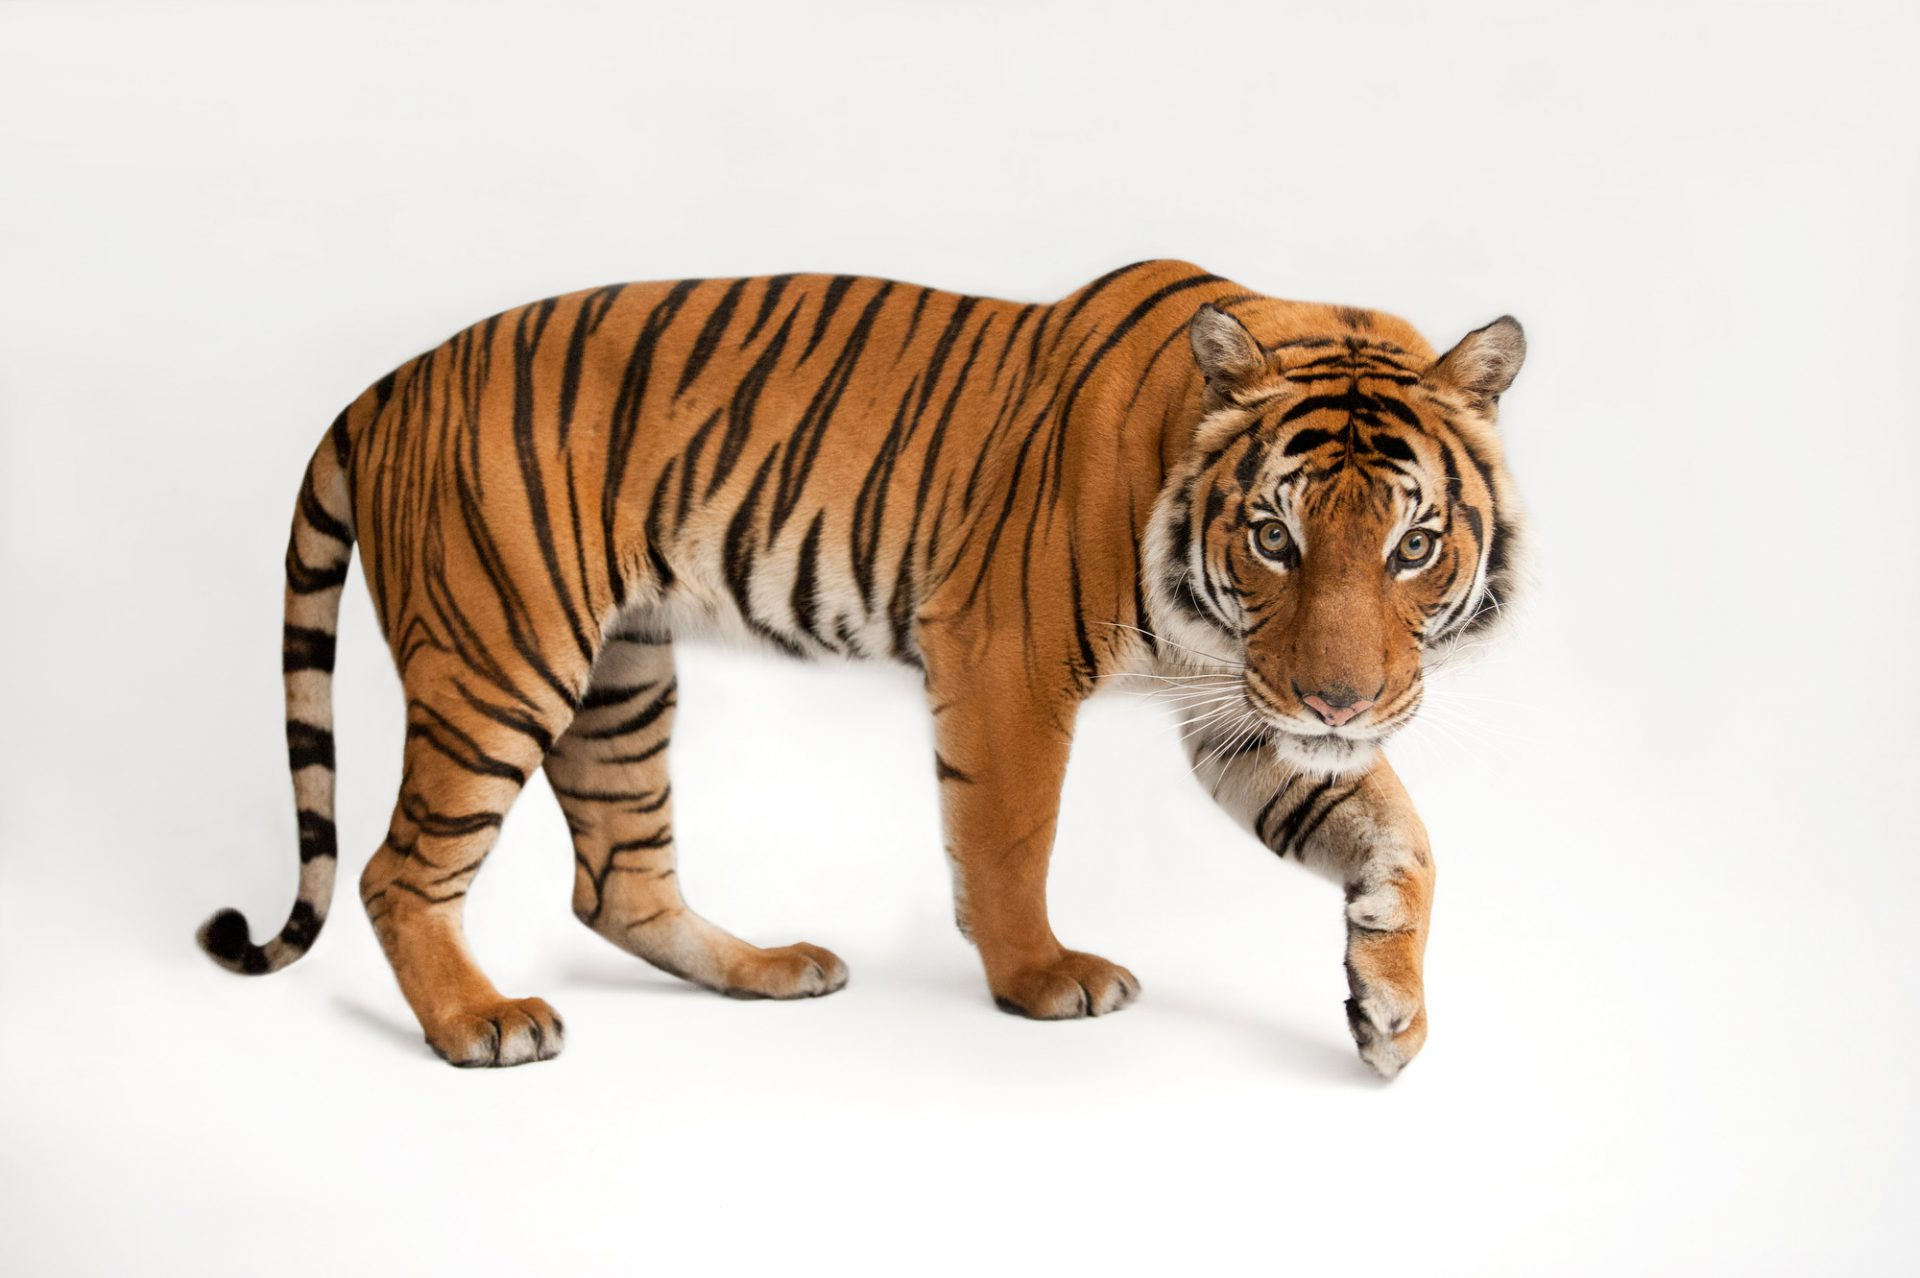 Photo: An endangered Malayan tiger, Panthera tigris jacksoni, at the Omaha Zoo. (Not available for licensing.)